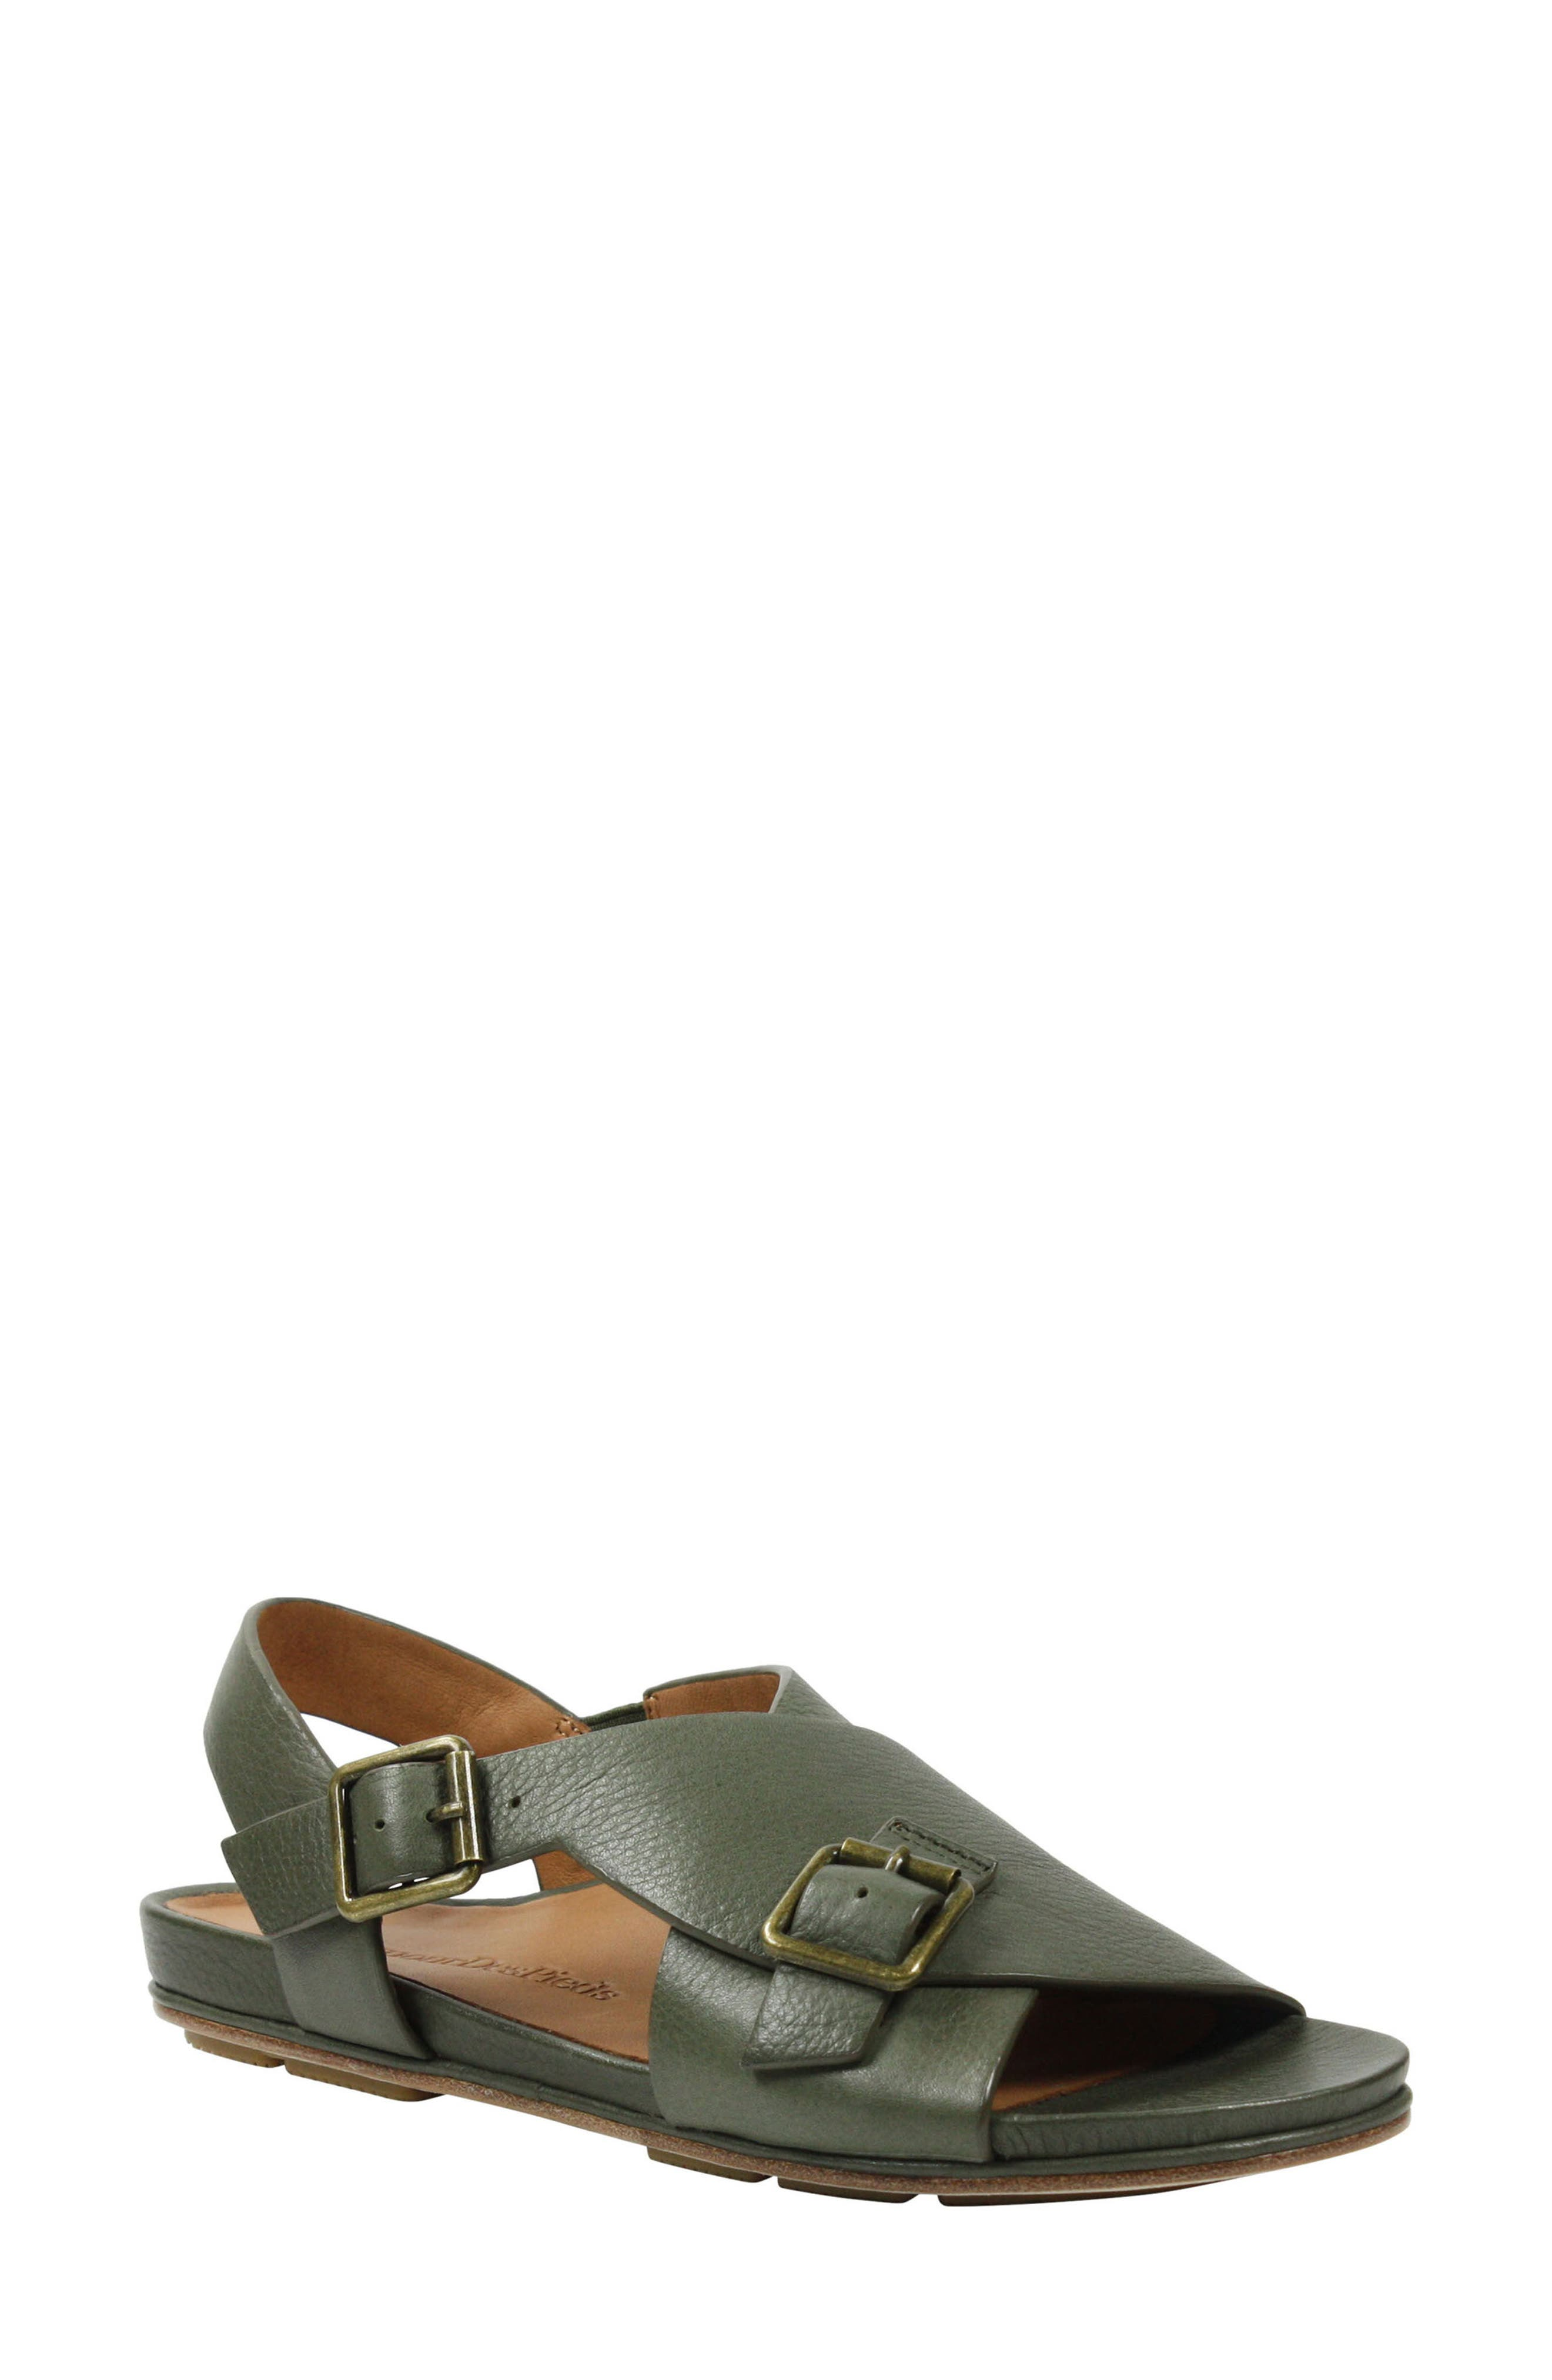 Dordogne Sandal,                             Main thumbnail 1, color,                             Olive Leather